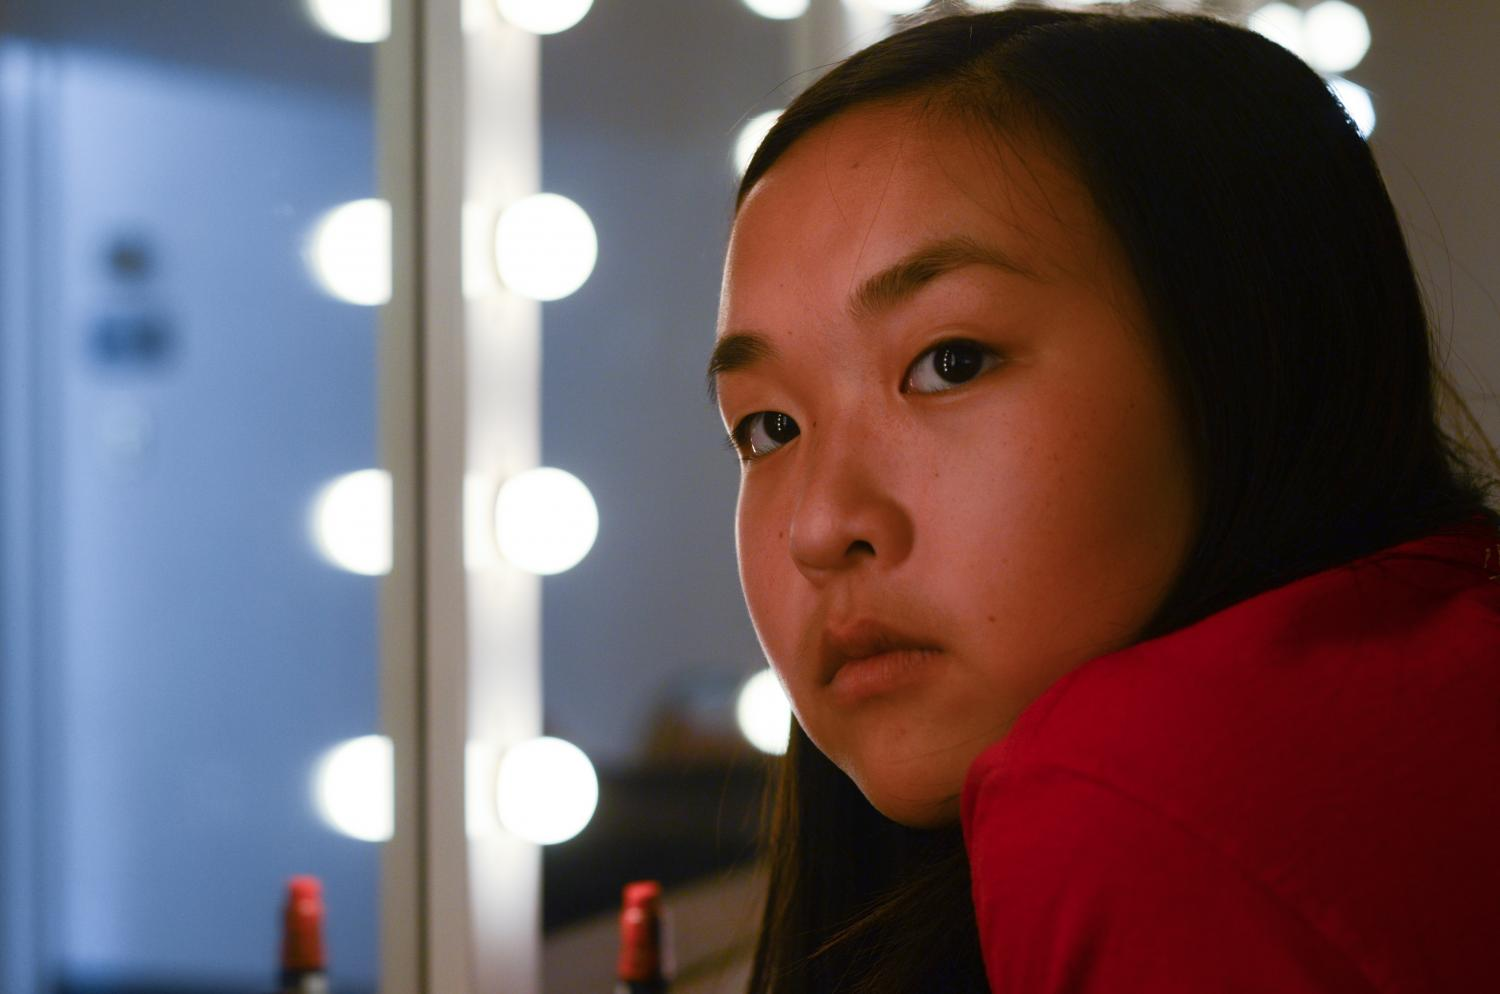 """""""I don't think I have any regrets. I think about it, and if I did change any of it then my life would be different, and I don't want it to be. I like where it is right now,"""" Charley Huang (12) said."""